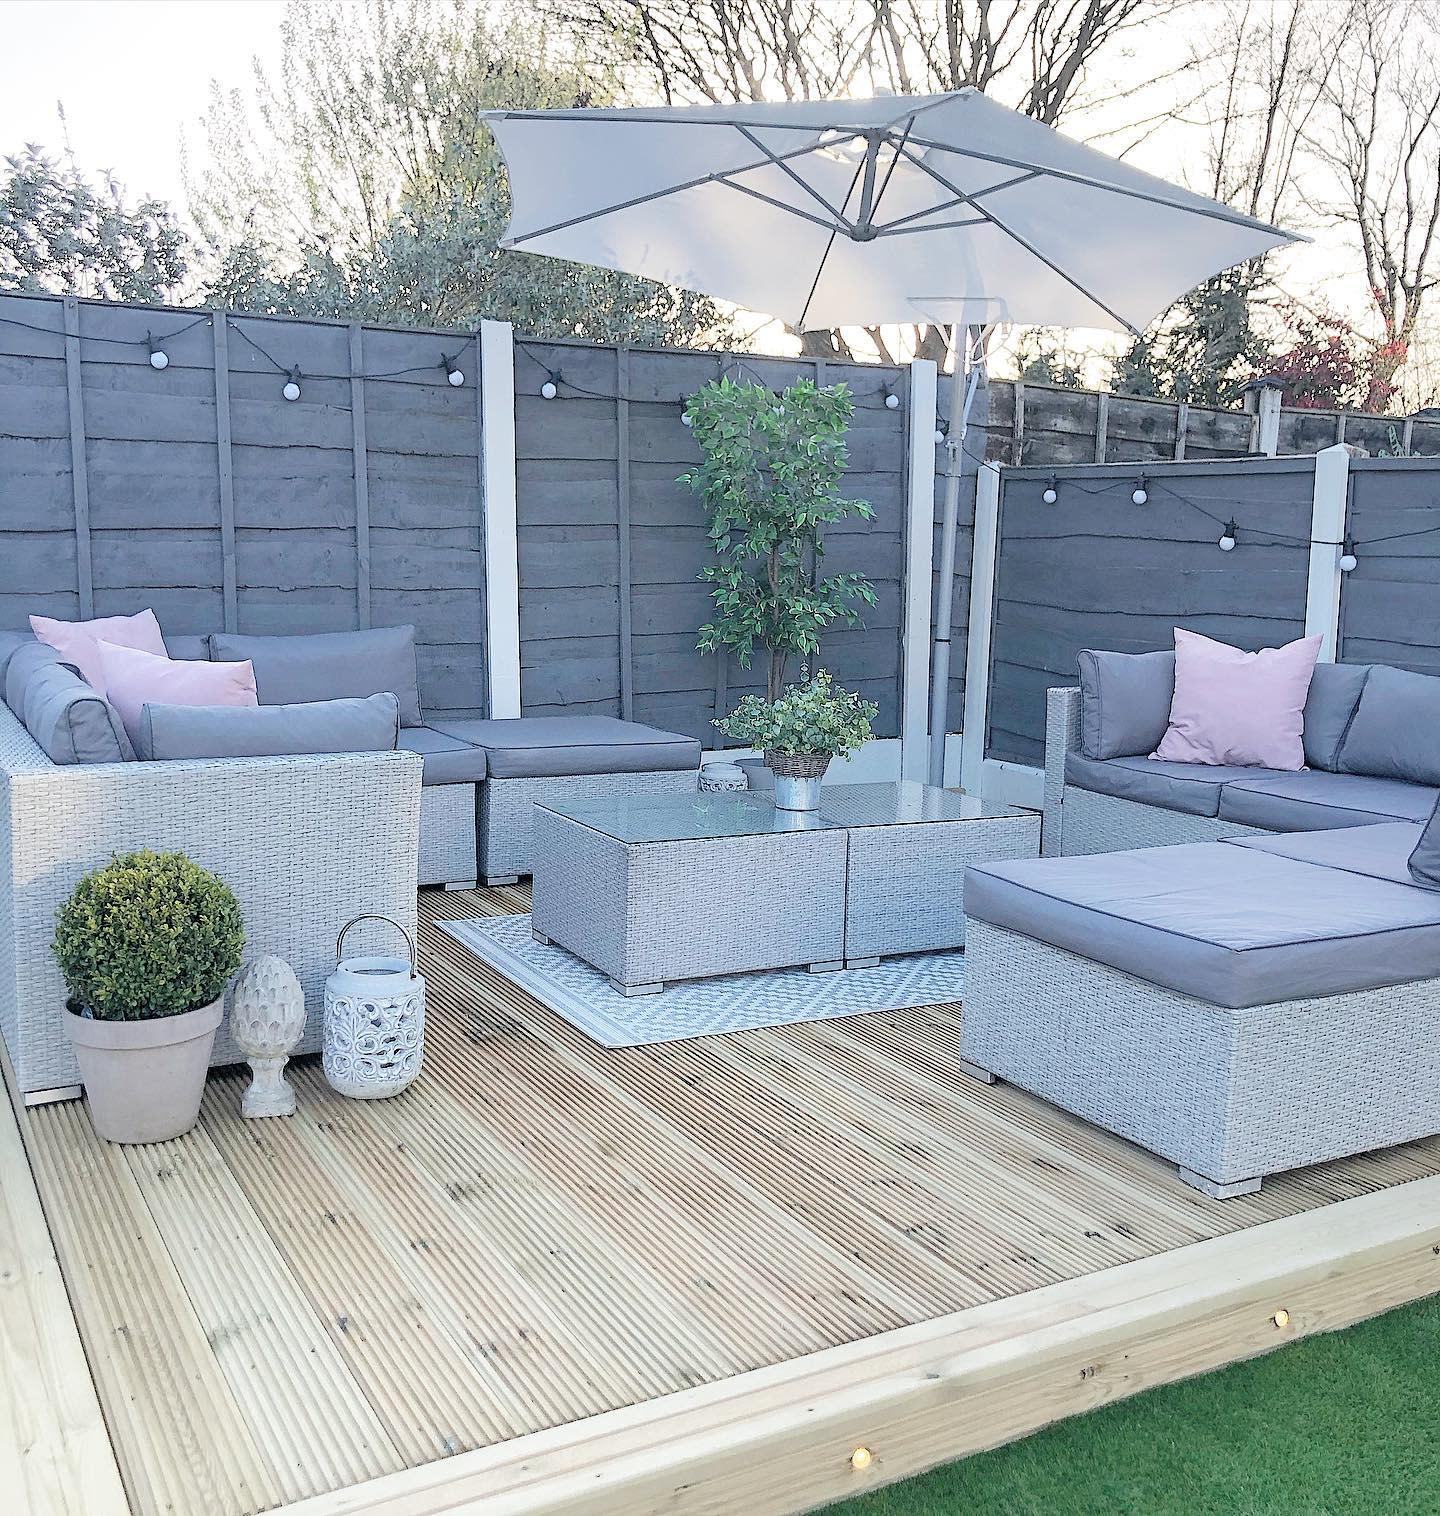 Corner Backyard Privacy Ideas 2 -the_house_we_wished_for